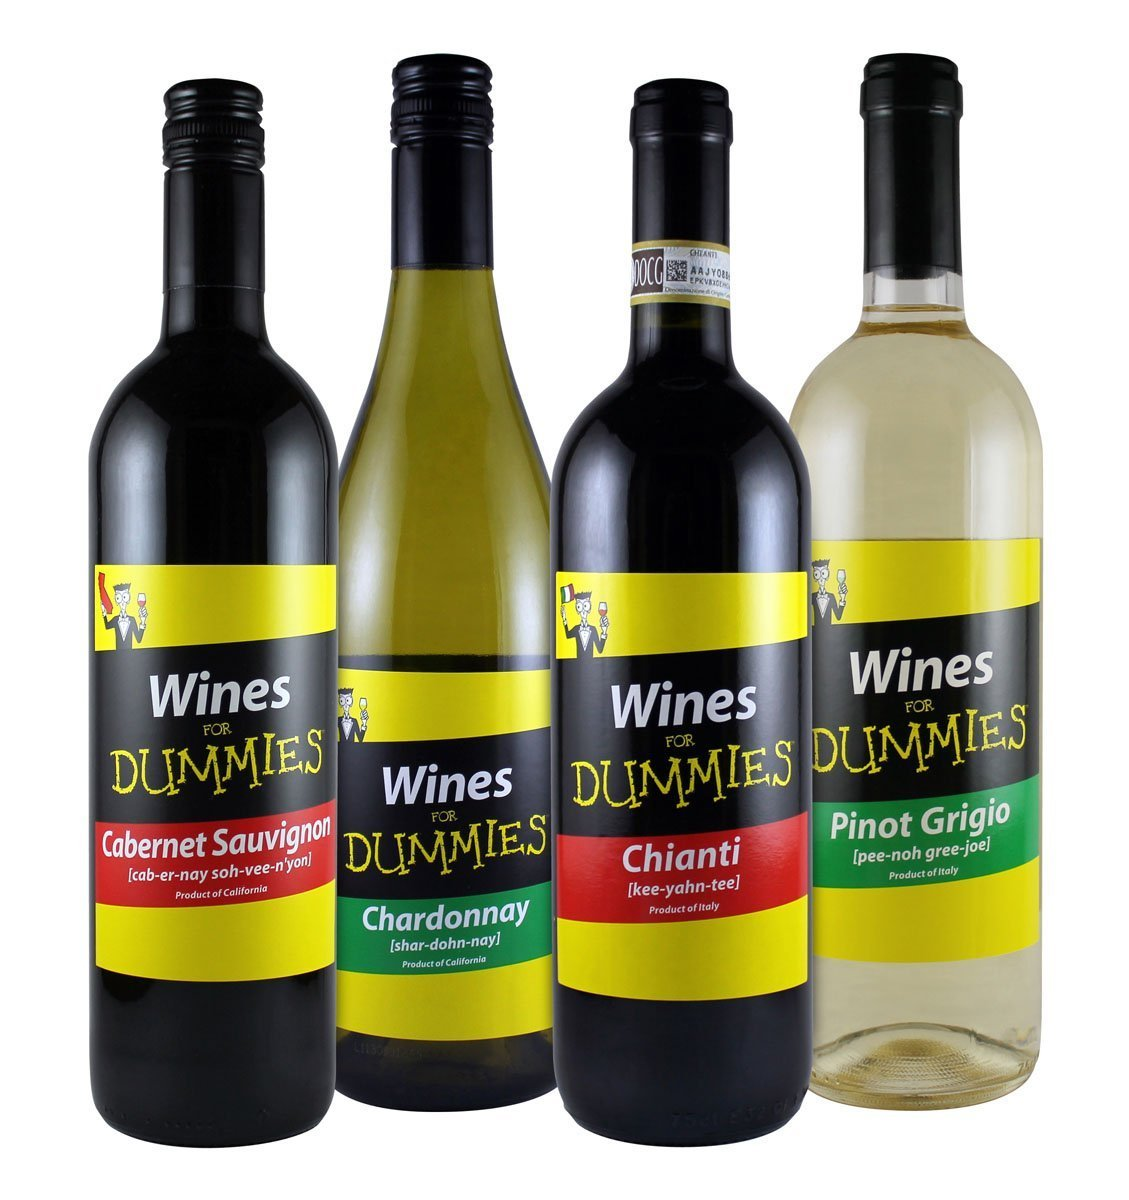 2012 Wines for Dummies Pinot Grigio IGT